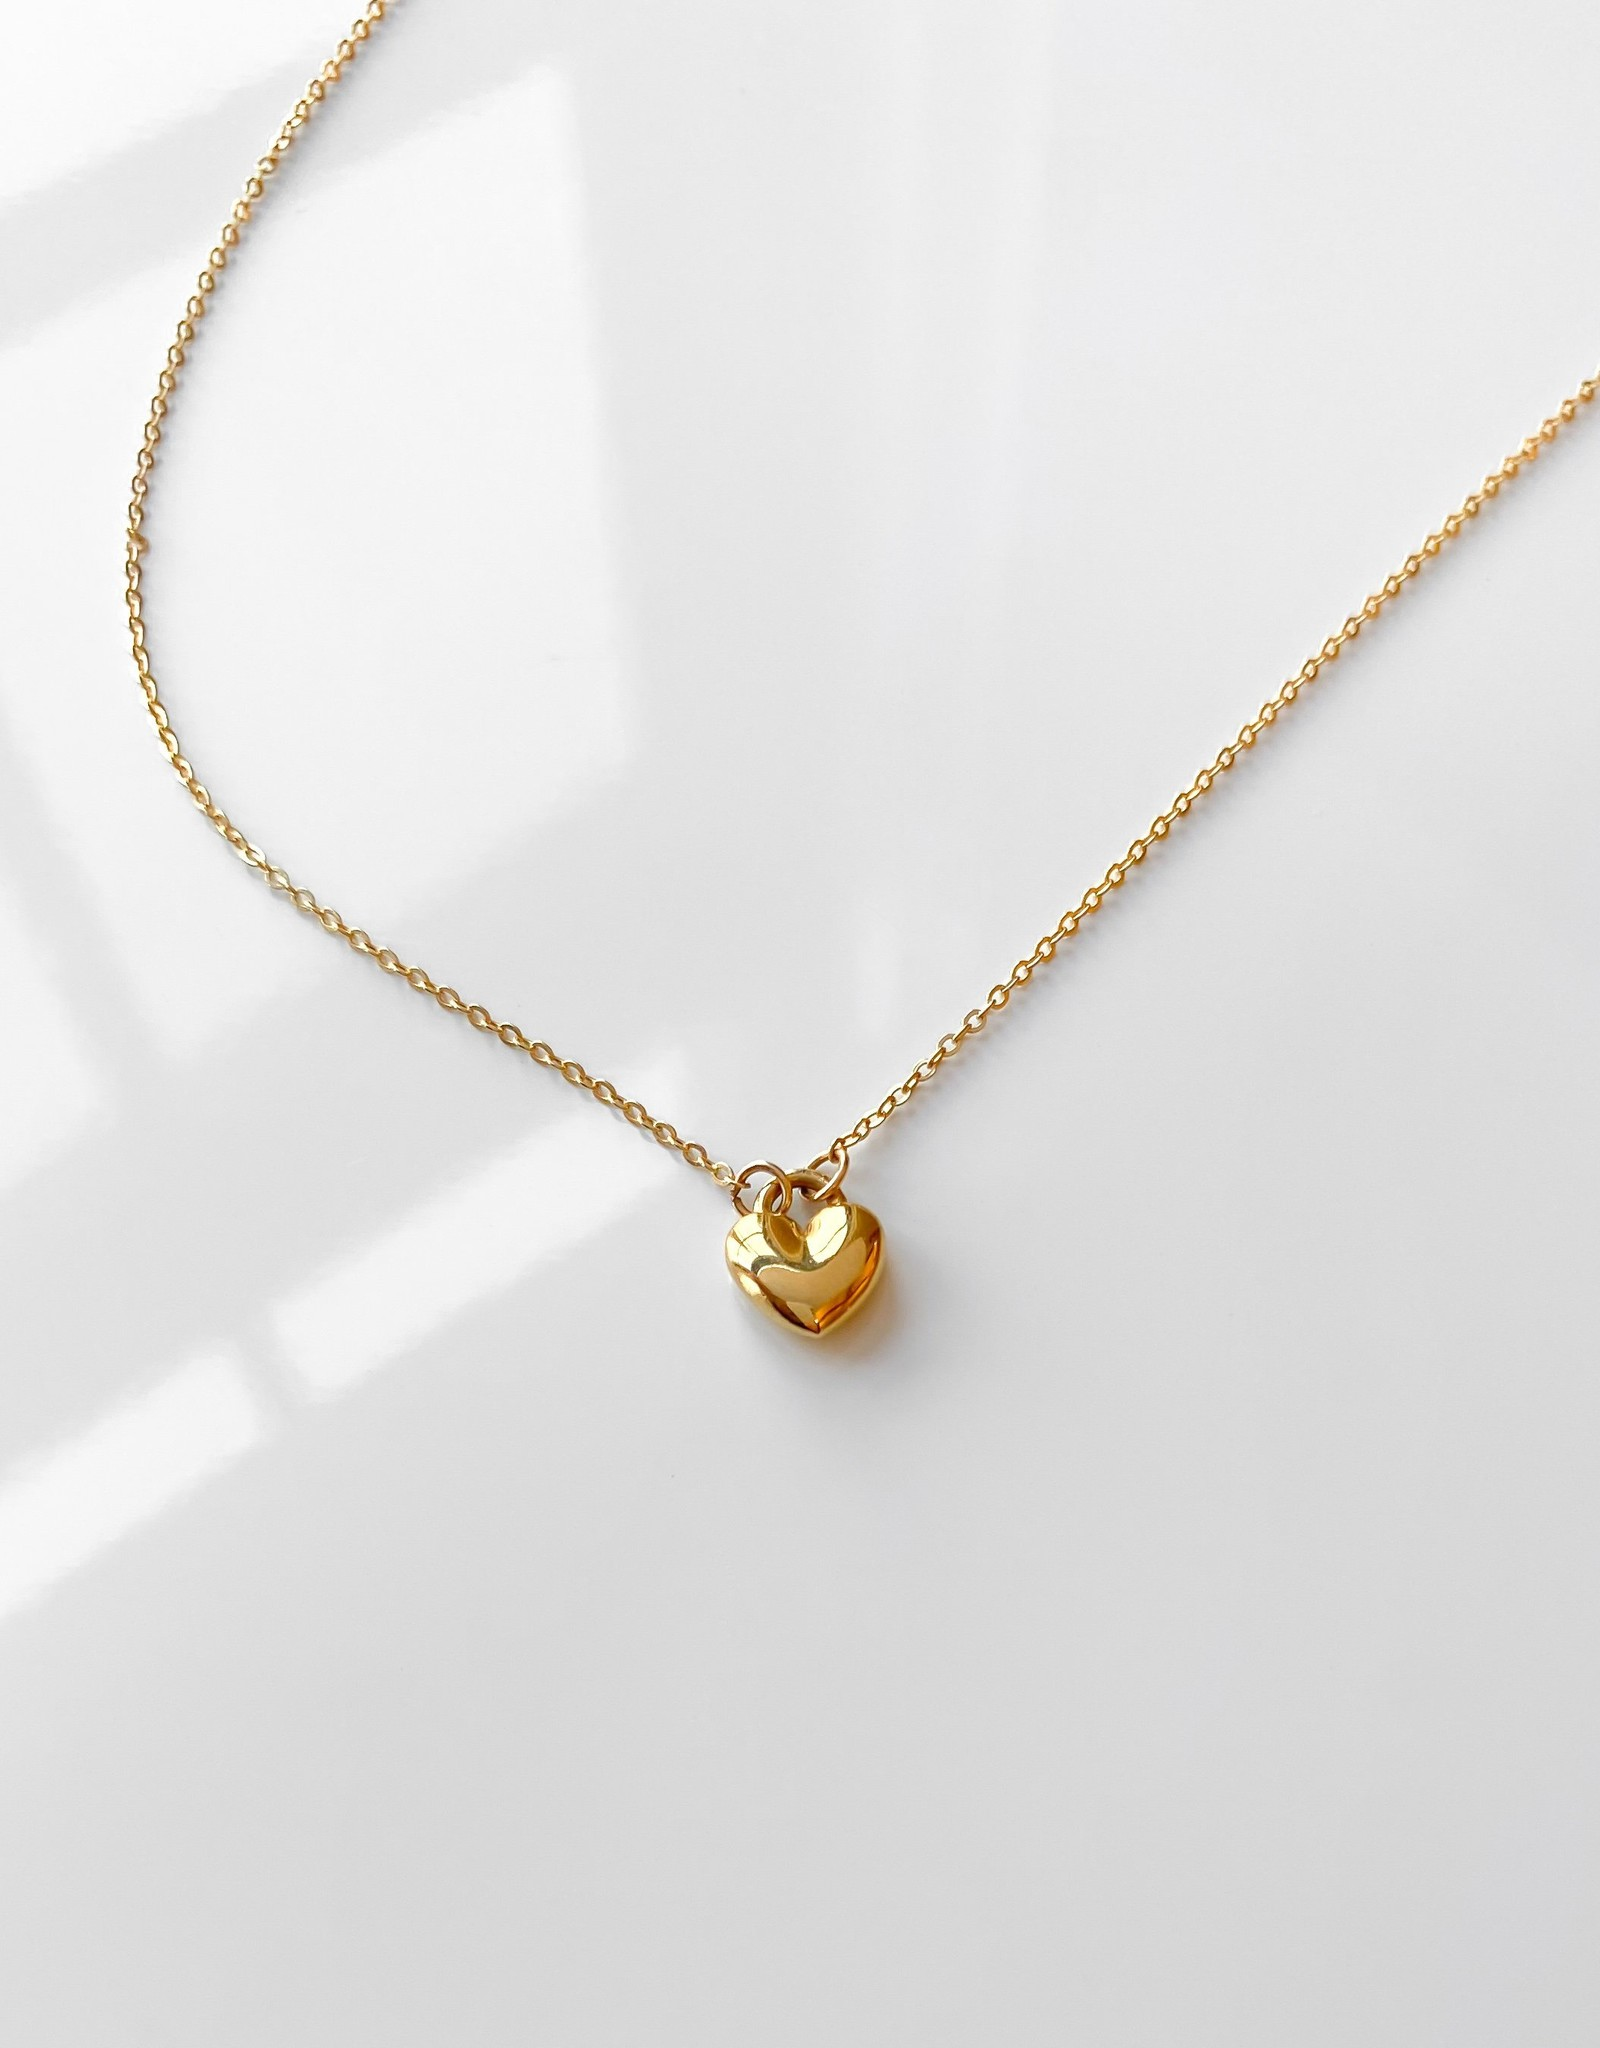 Thatch Jewelry Adoring Heart Necklace